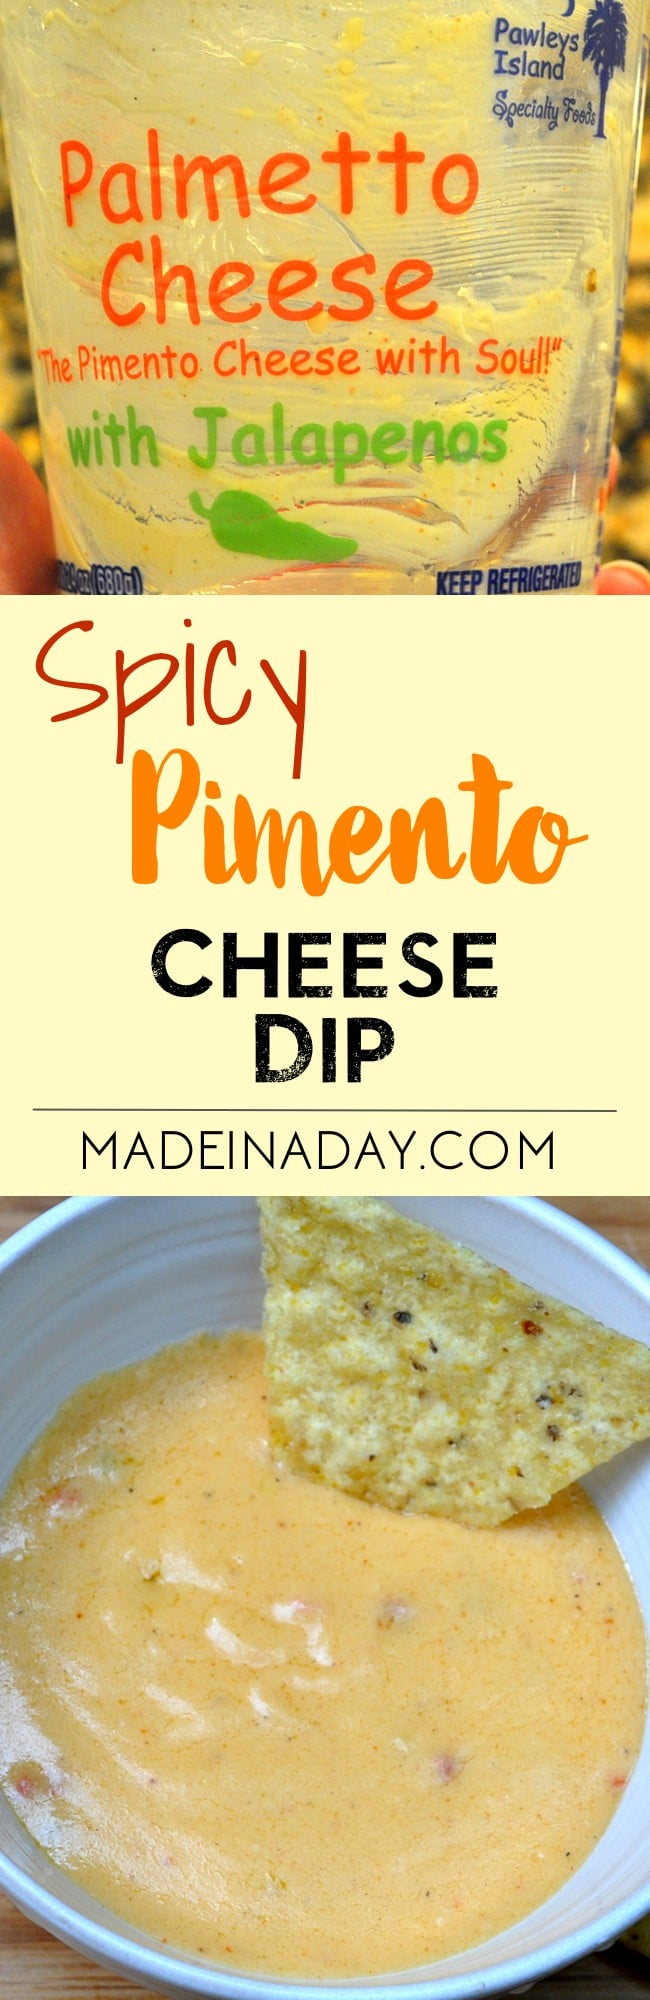 Spicy Pimento Cheese Dip 3